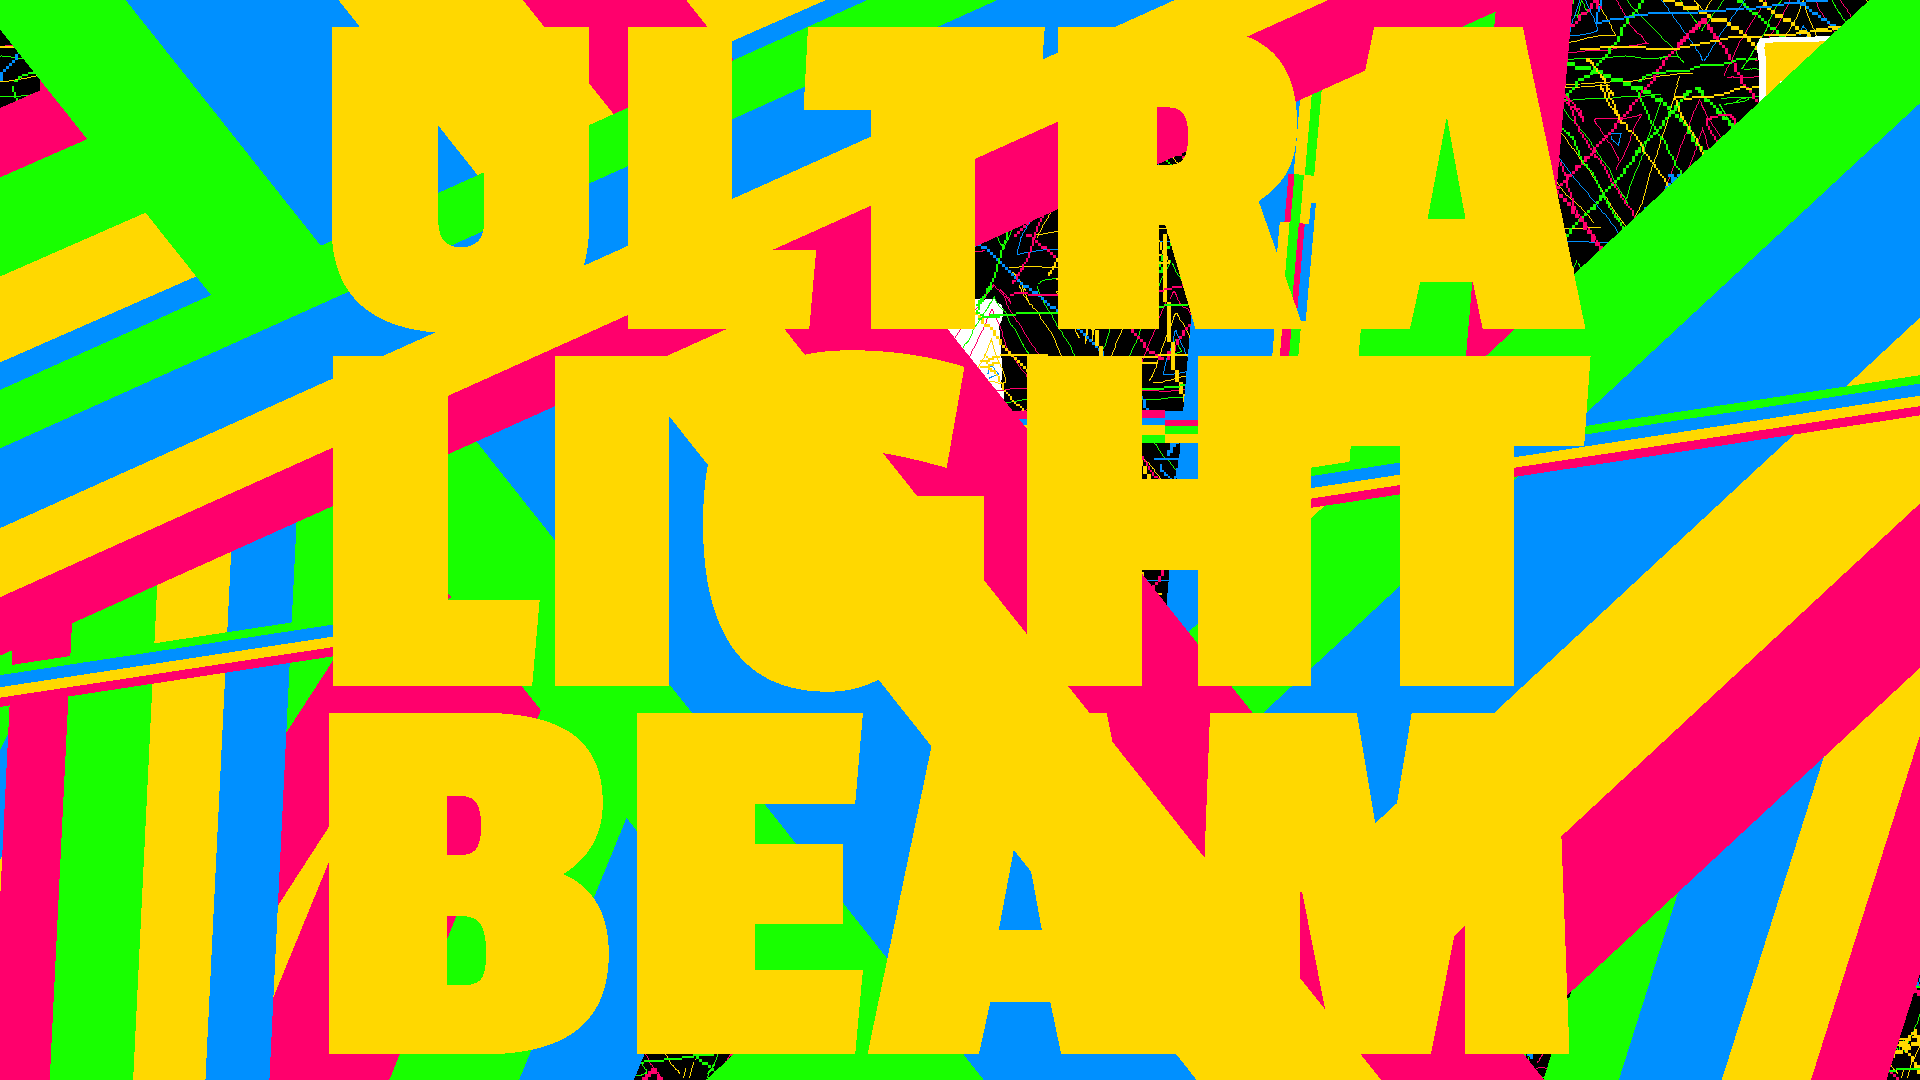 Ultralight_Beam 2016-05-04 00-32-32-73